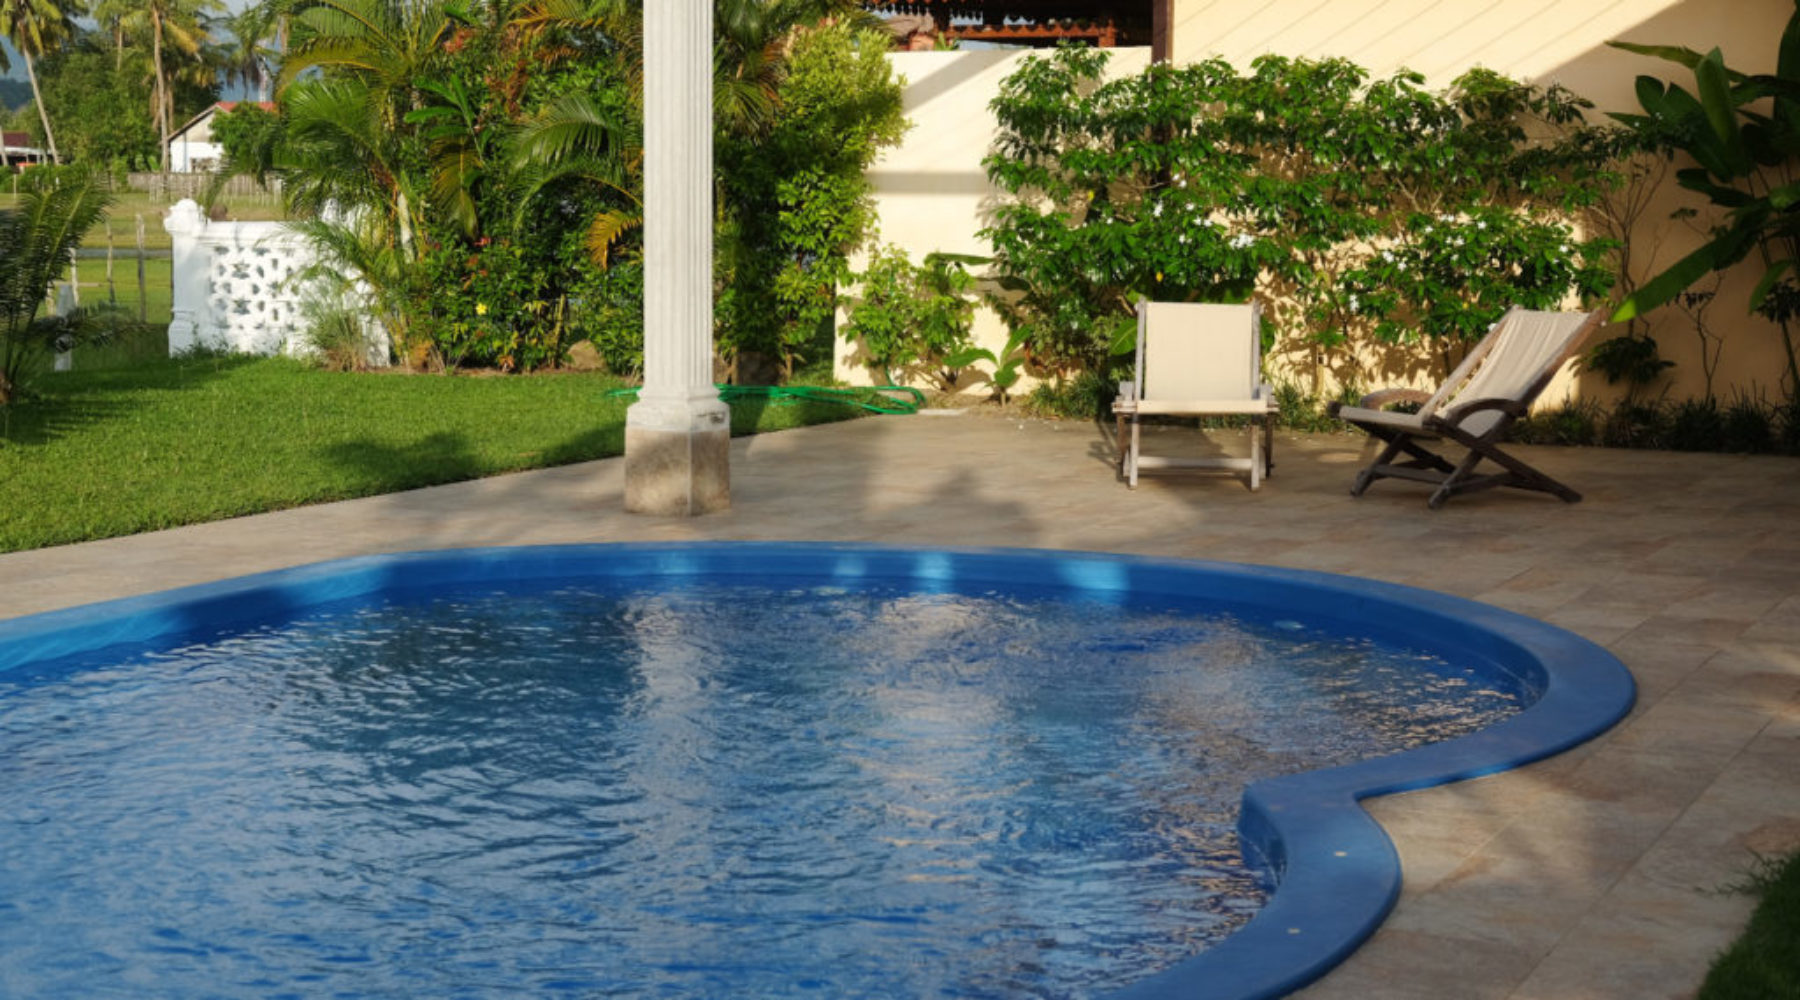 Langkawi Villa Cathaya Outdoor Pool for the whole family and friends